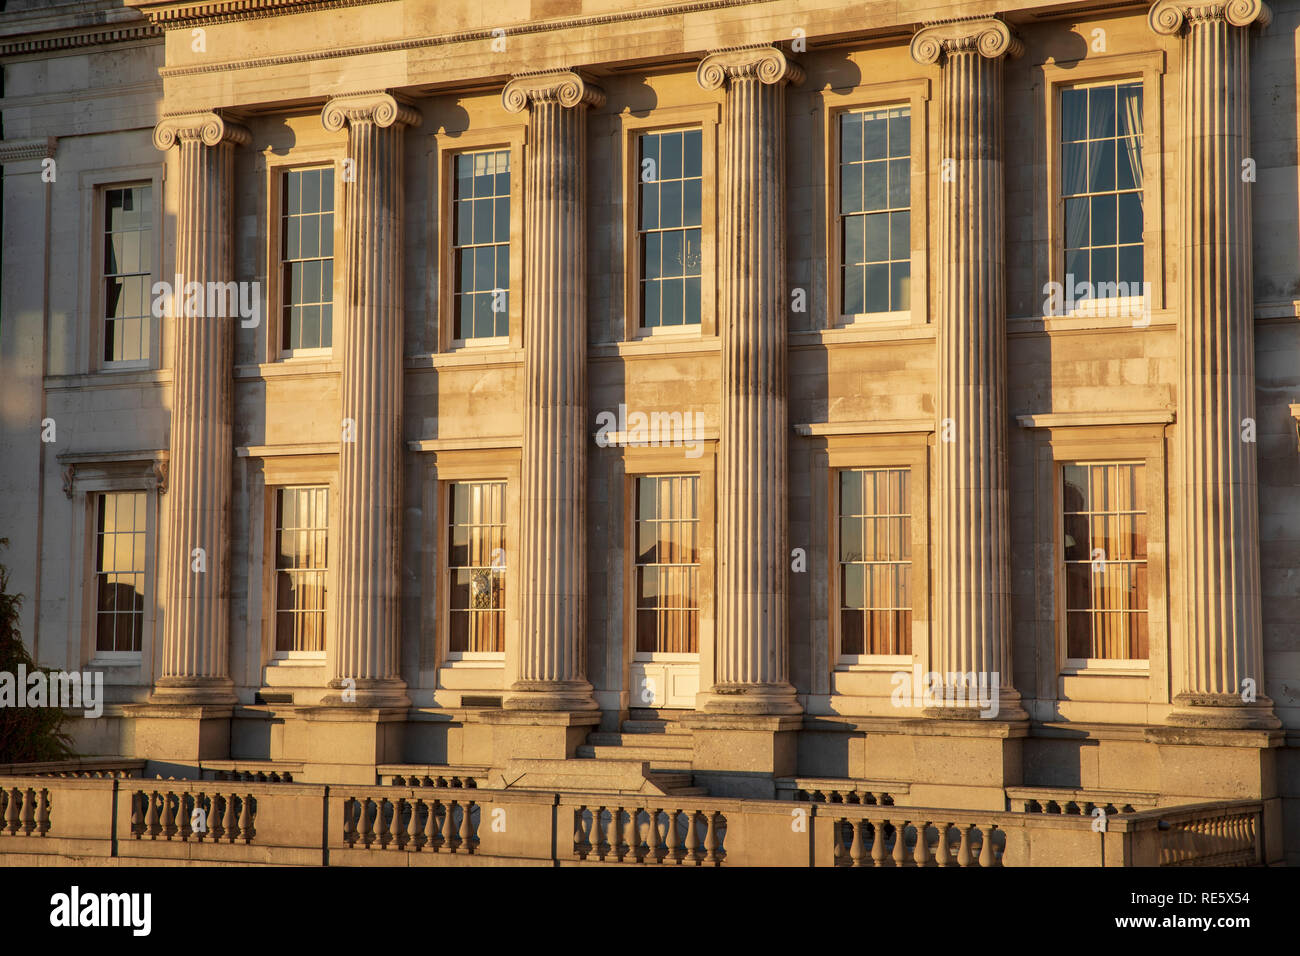 Fishmongers' Hall, a Grade II* listed building in London, England. - Stock Image